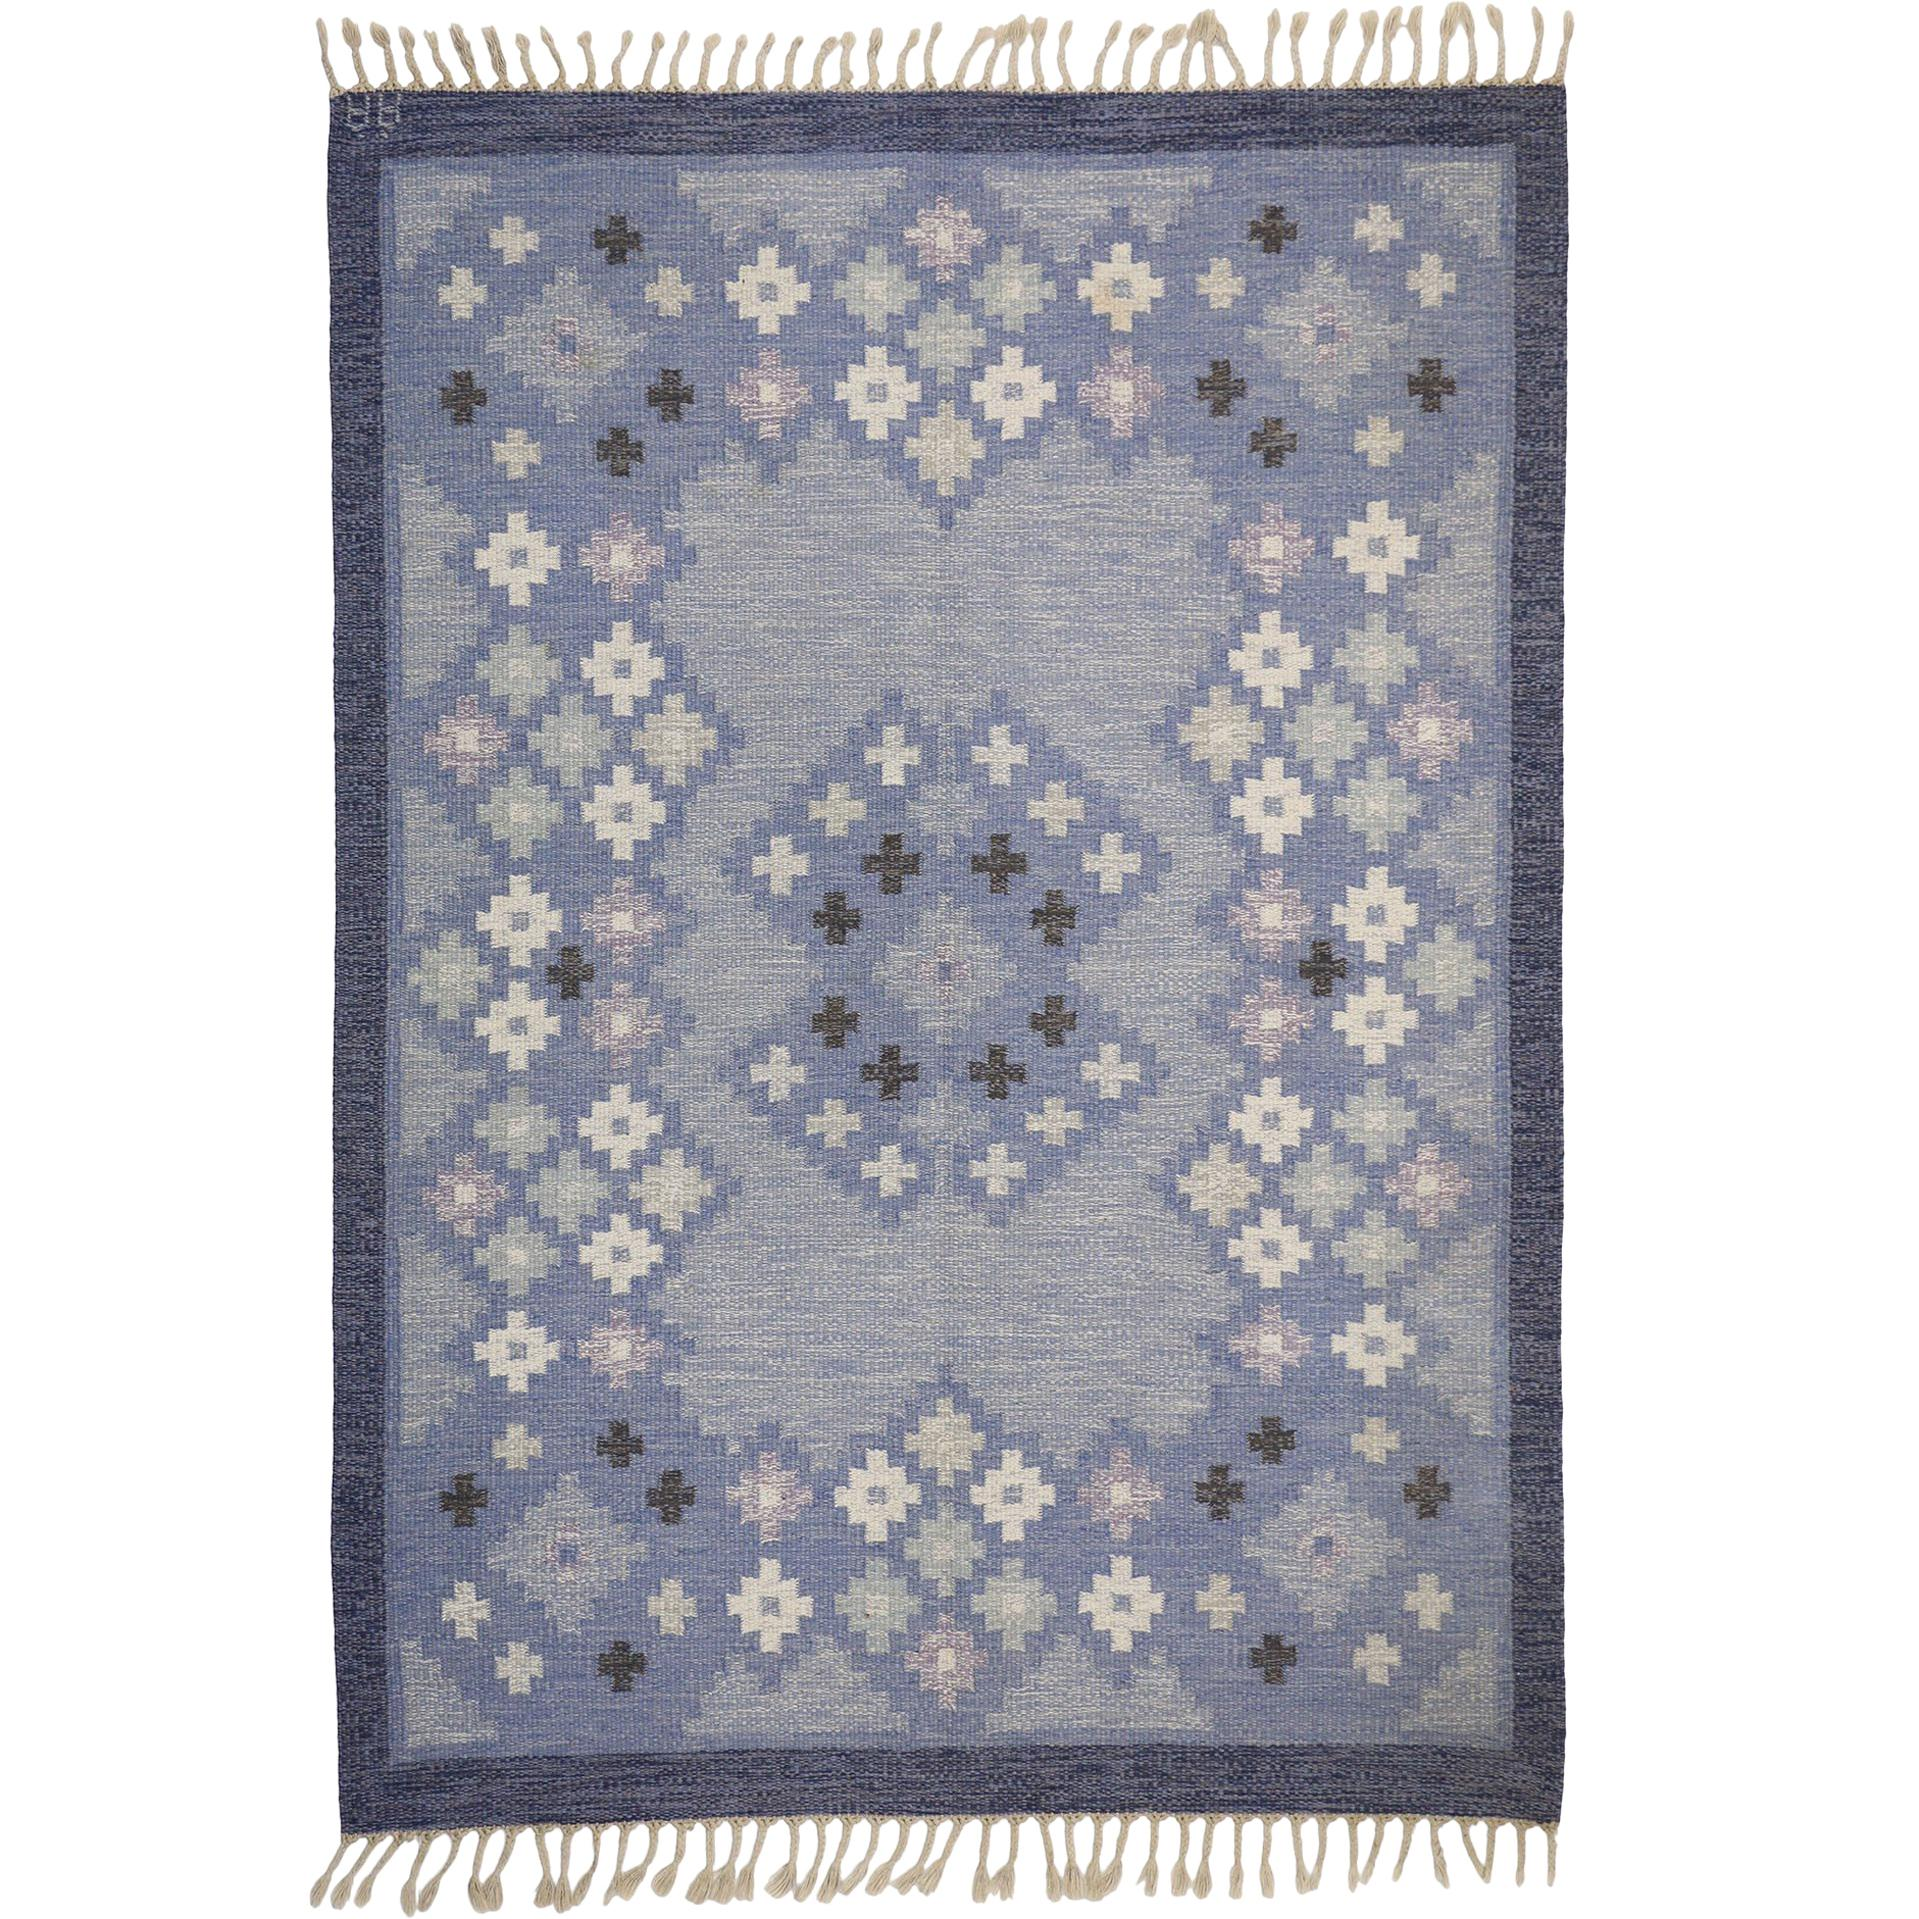 Vintage Swedish Kilim Rollakan Rug with Scandinavian Modern by Anna Andersson